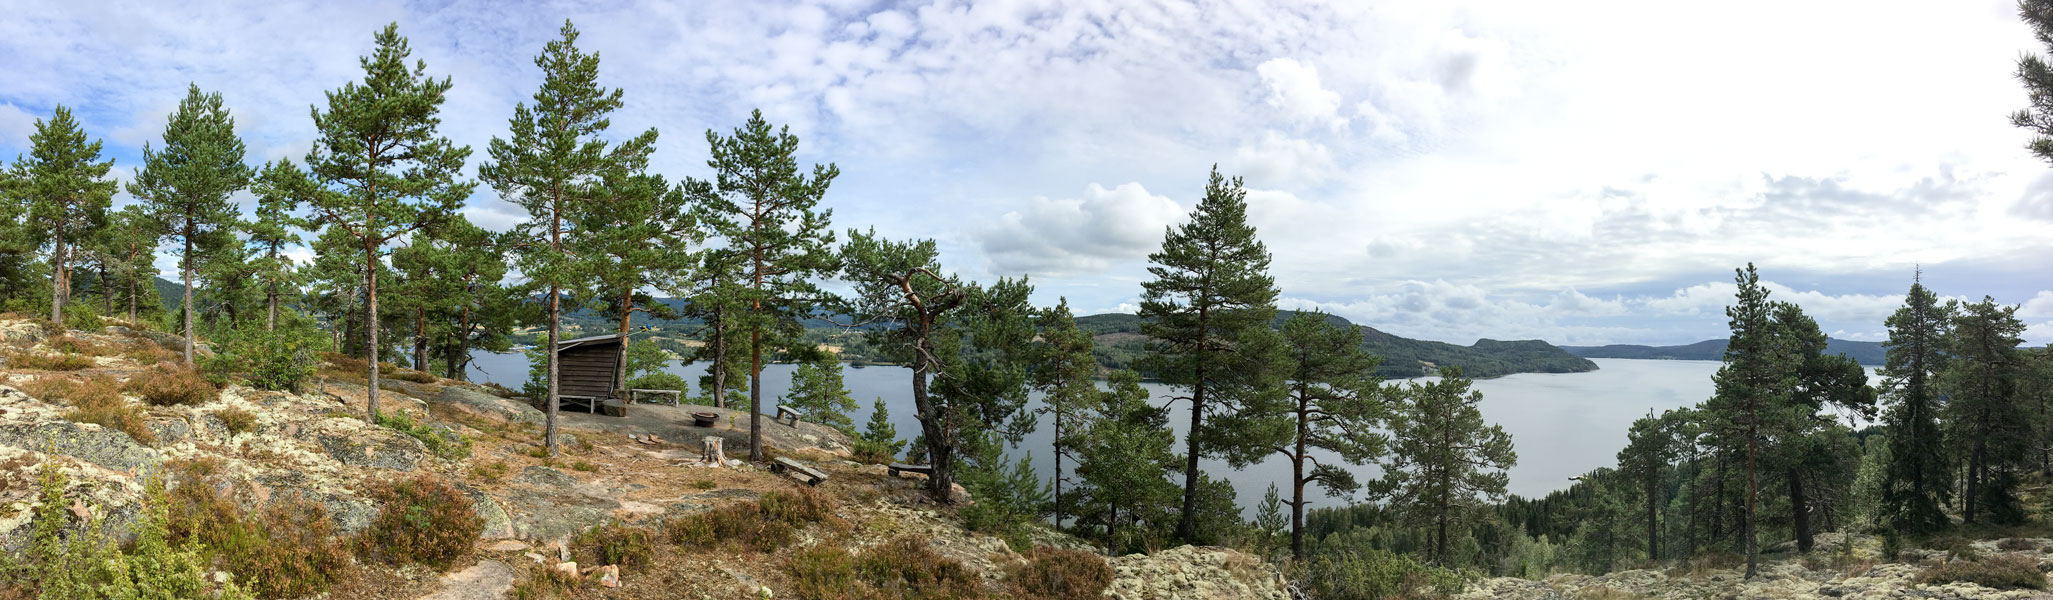 panoramic view of Dockstafjärden from Per Olsbo's shelter (toward south-east)